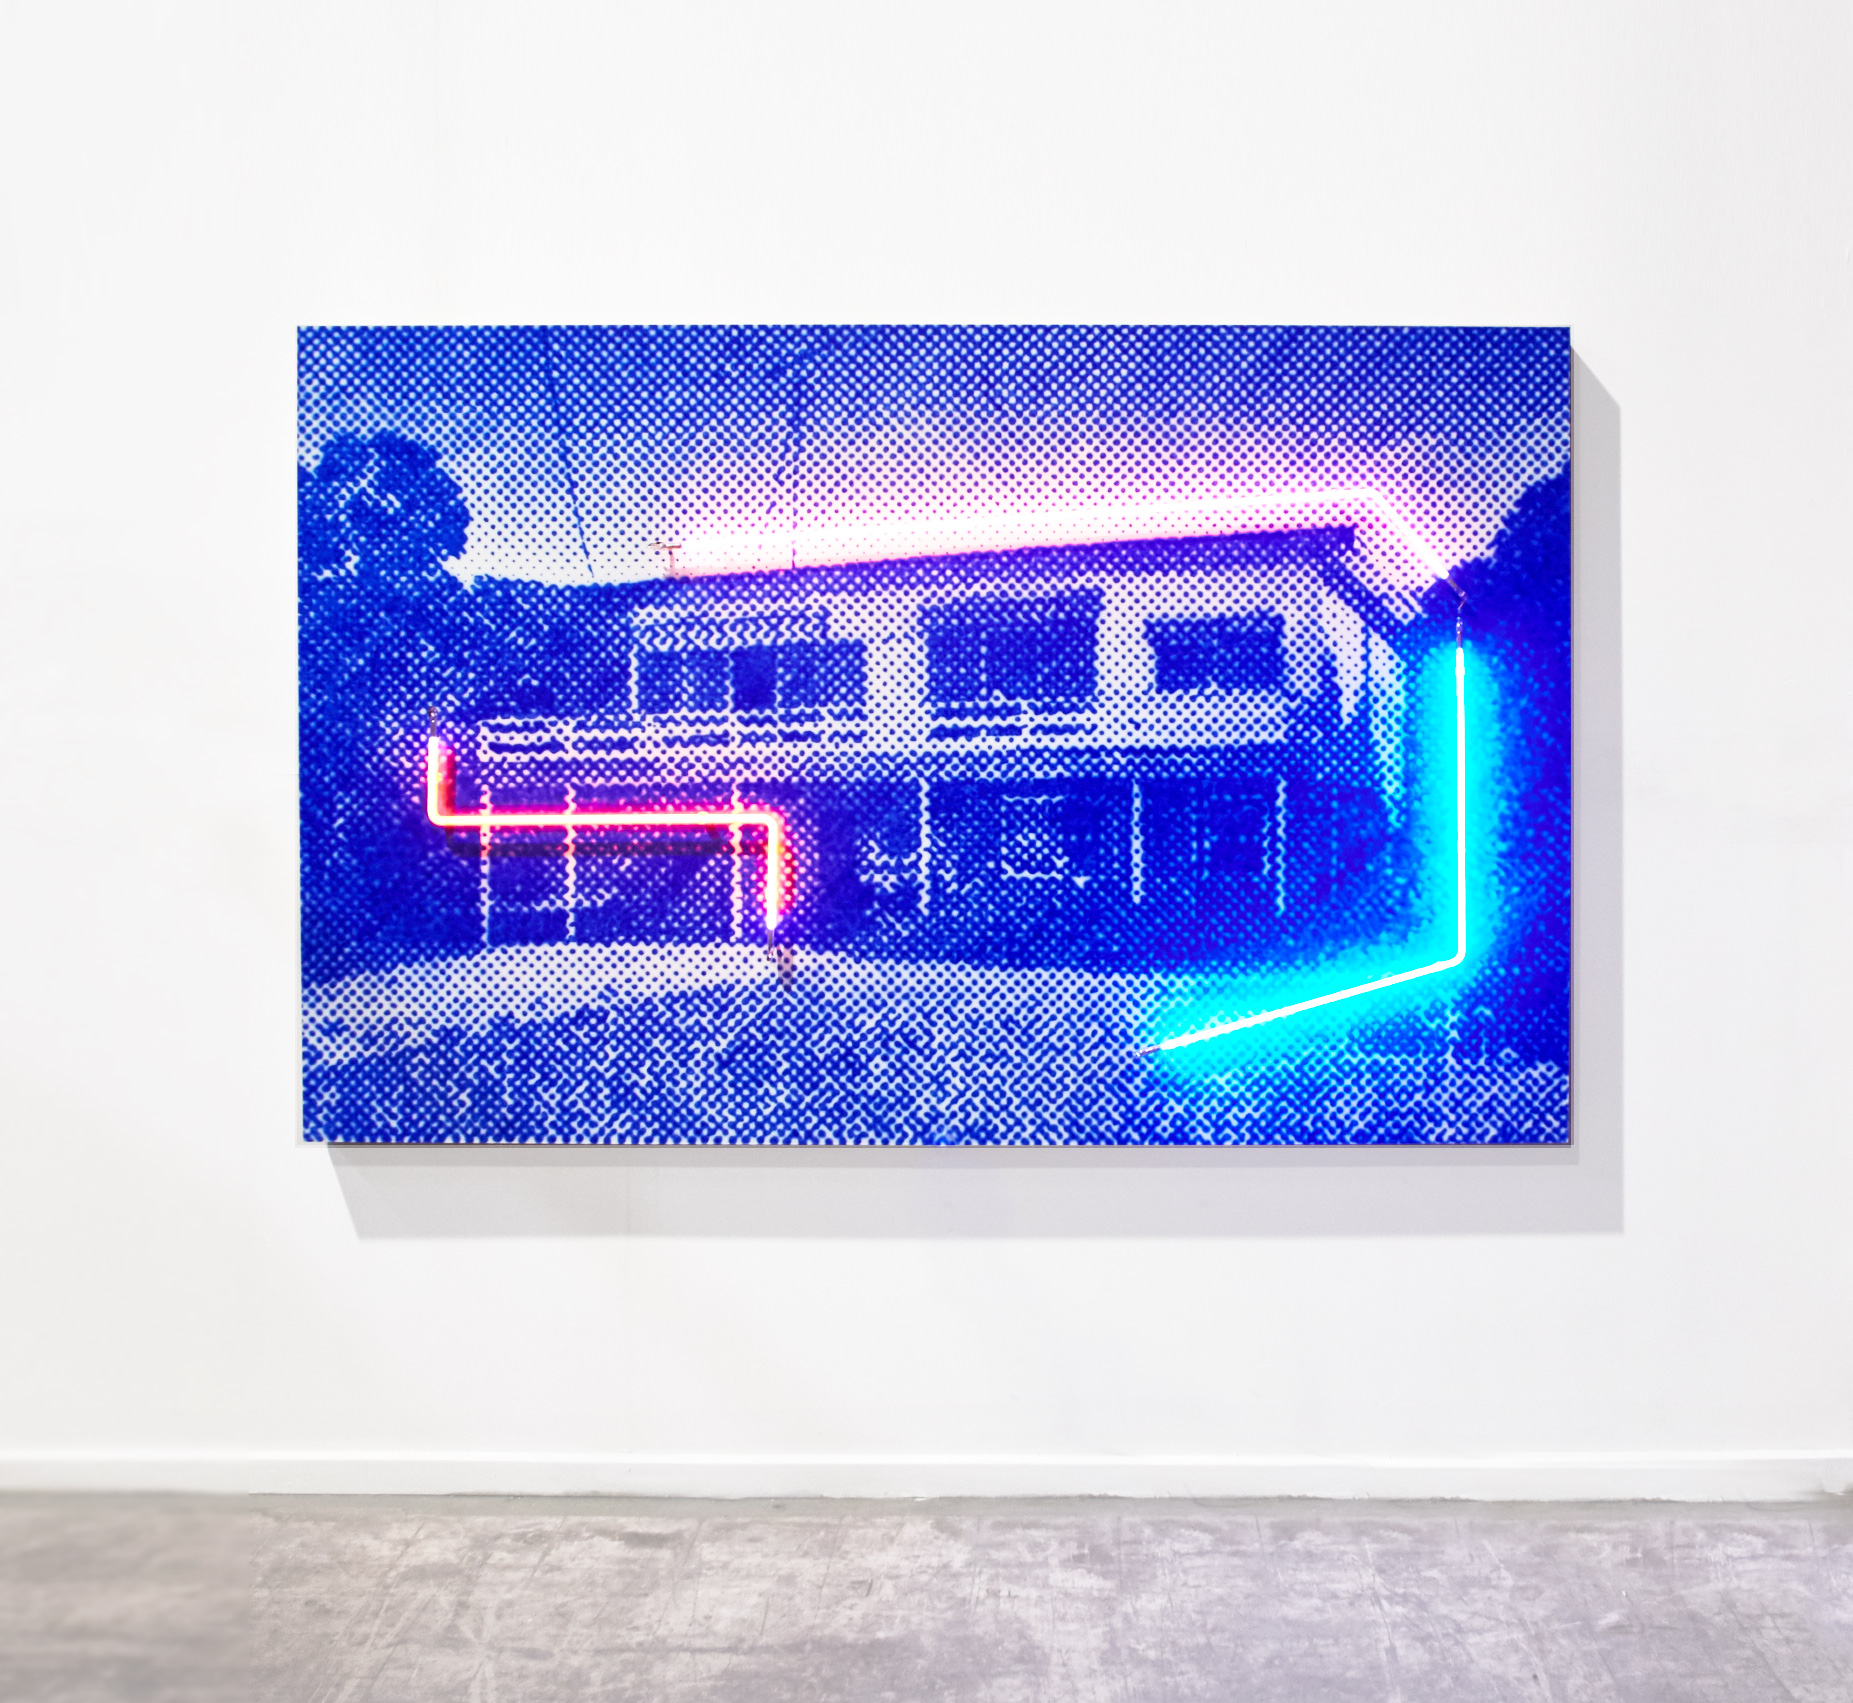 Eighth Ave, 2018 (Private commission)  Airbrush acrylic polymer and neon on dibond, acrylic frame 120x220cm